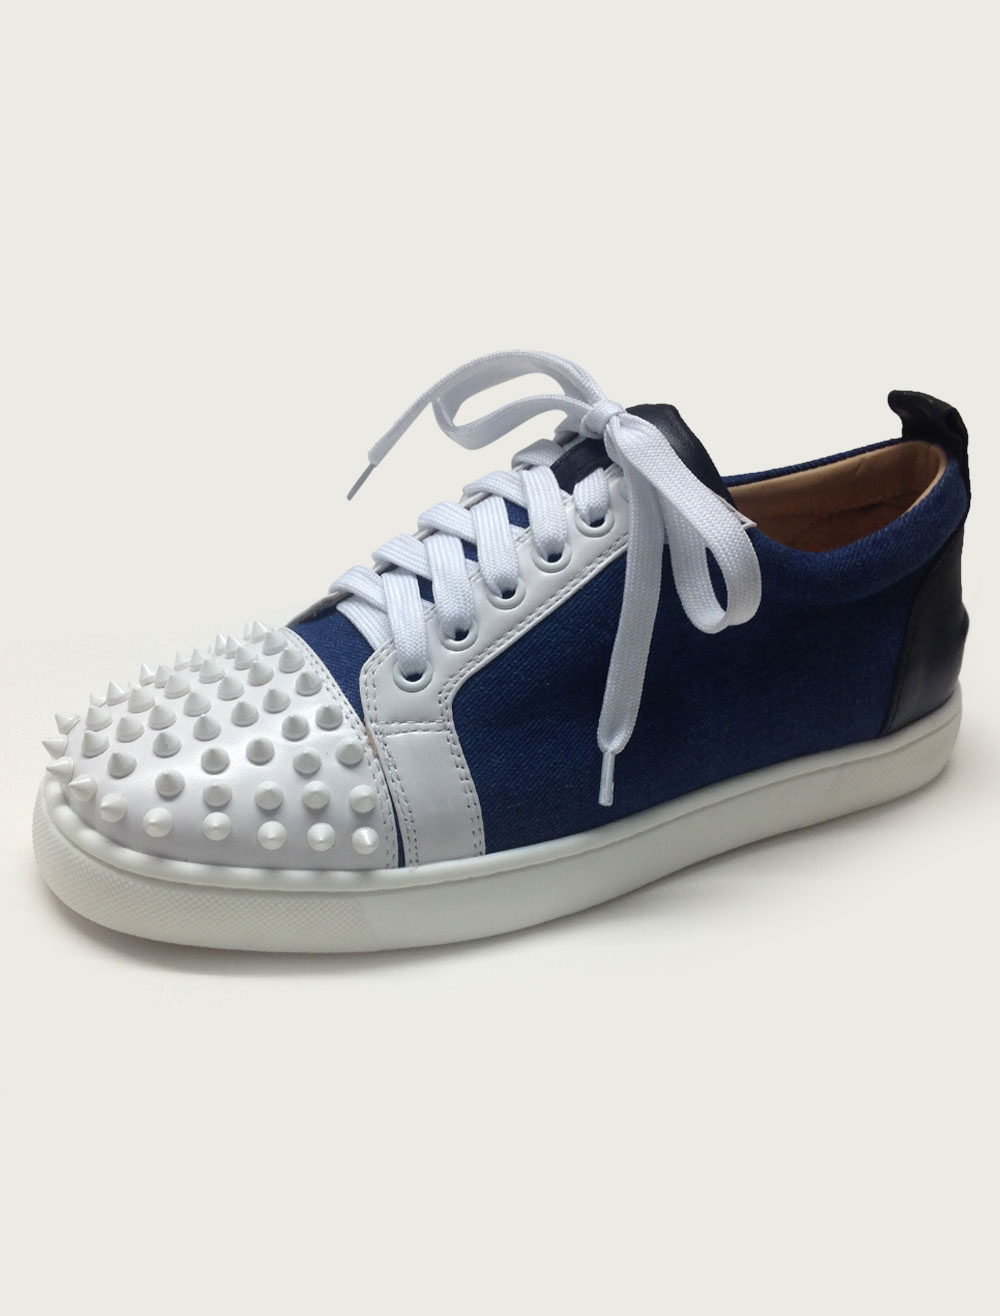 Rivets Sneakers Color Block Lace Up Leather Shoes for Men